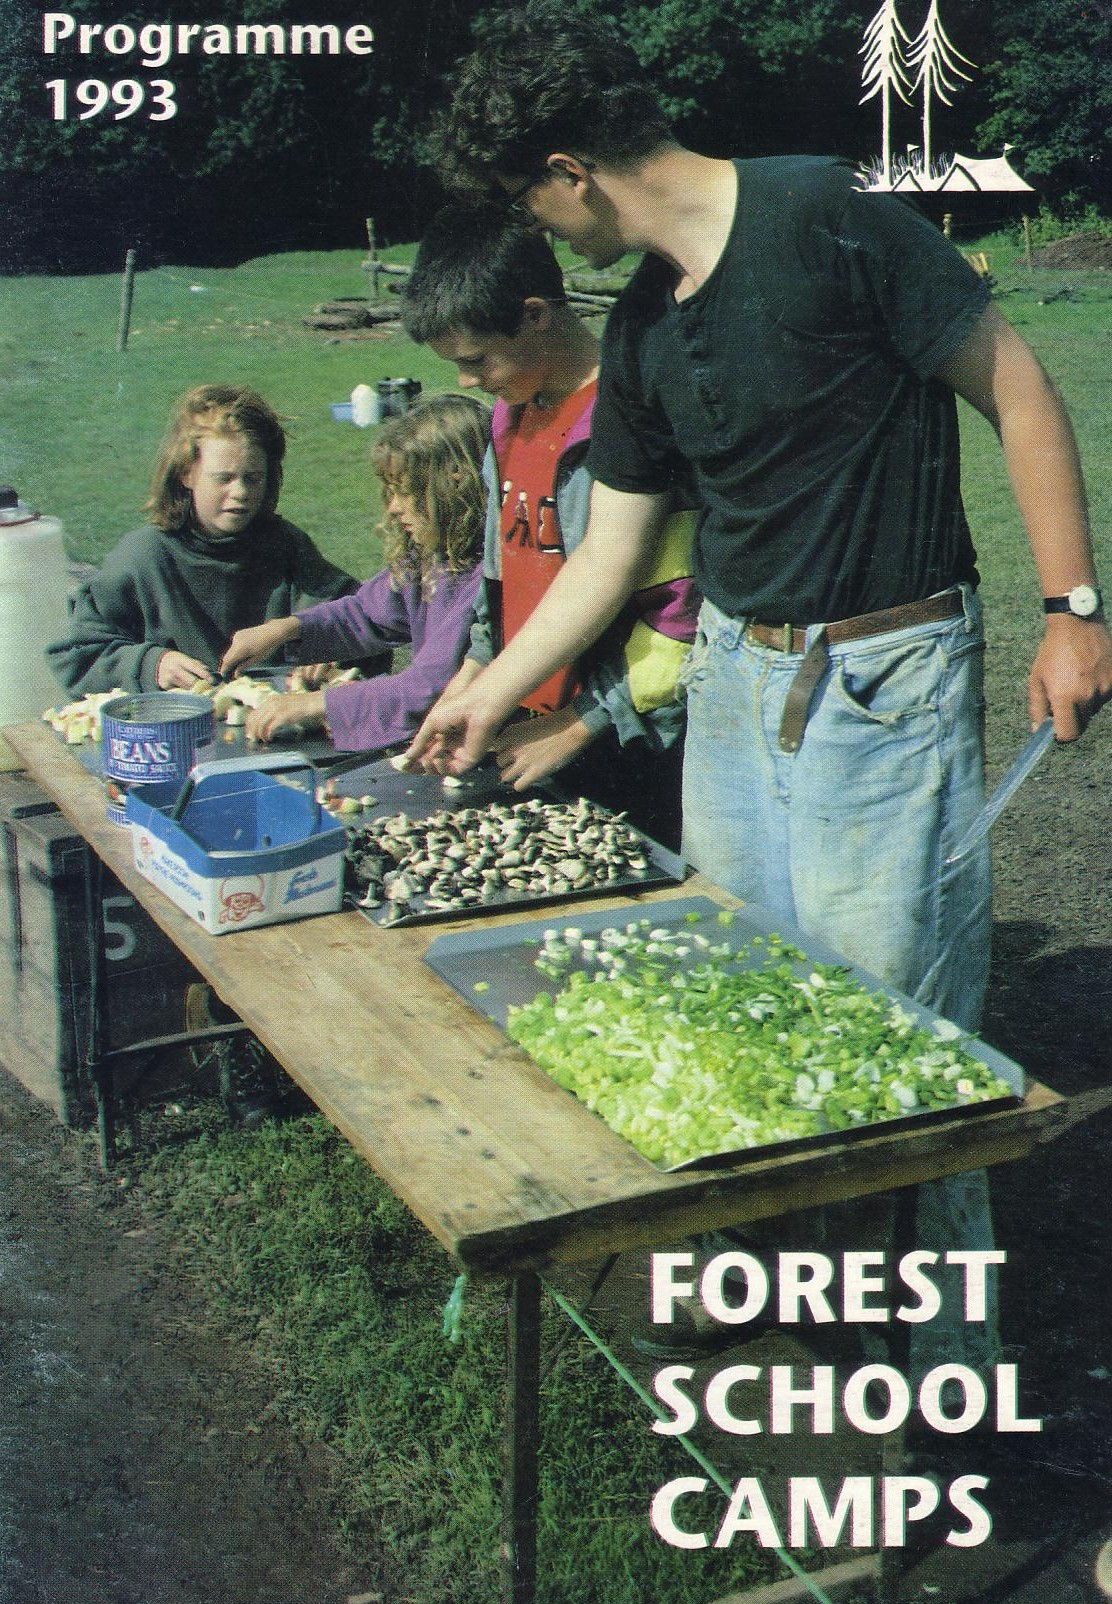 Forest School Camps Programme 1993 (FSC/3/1/47)